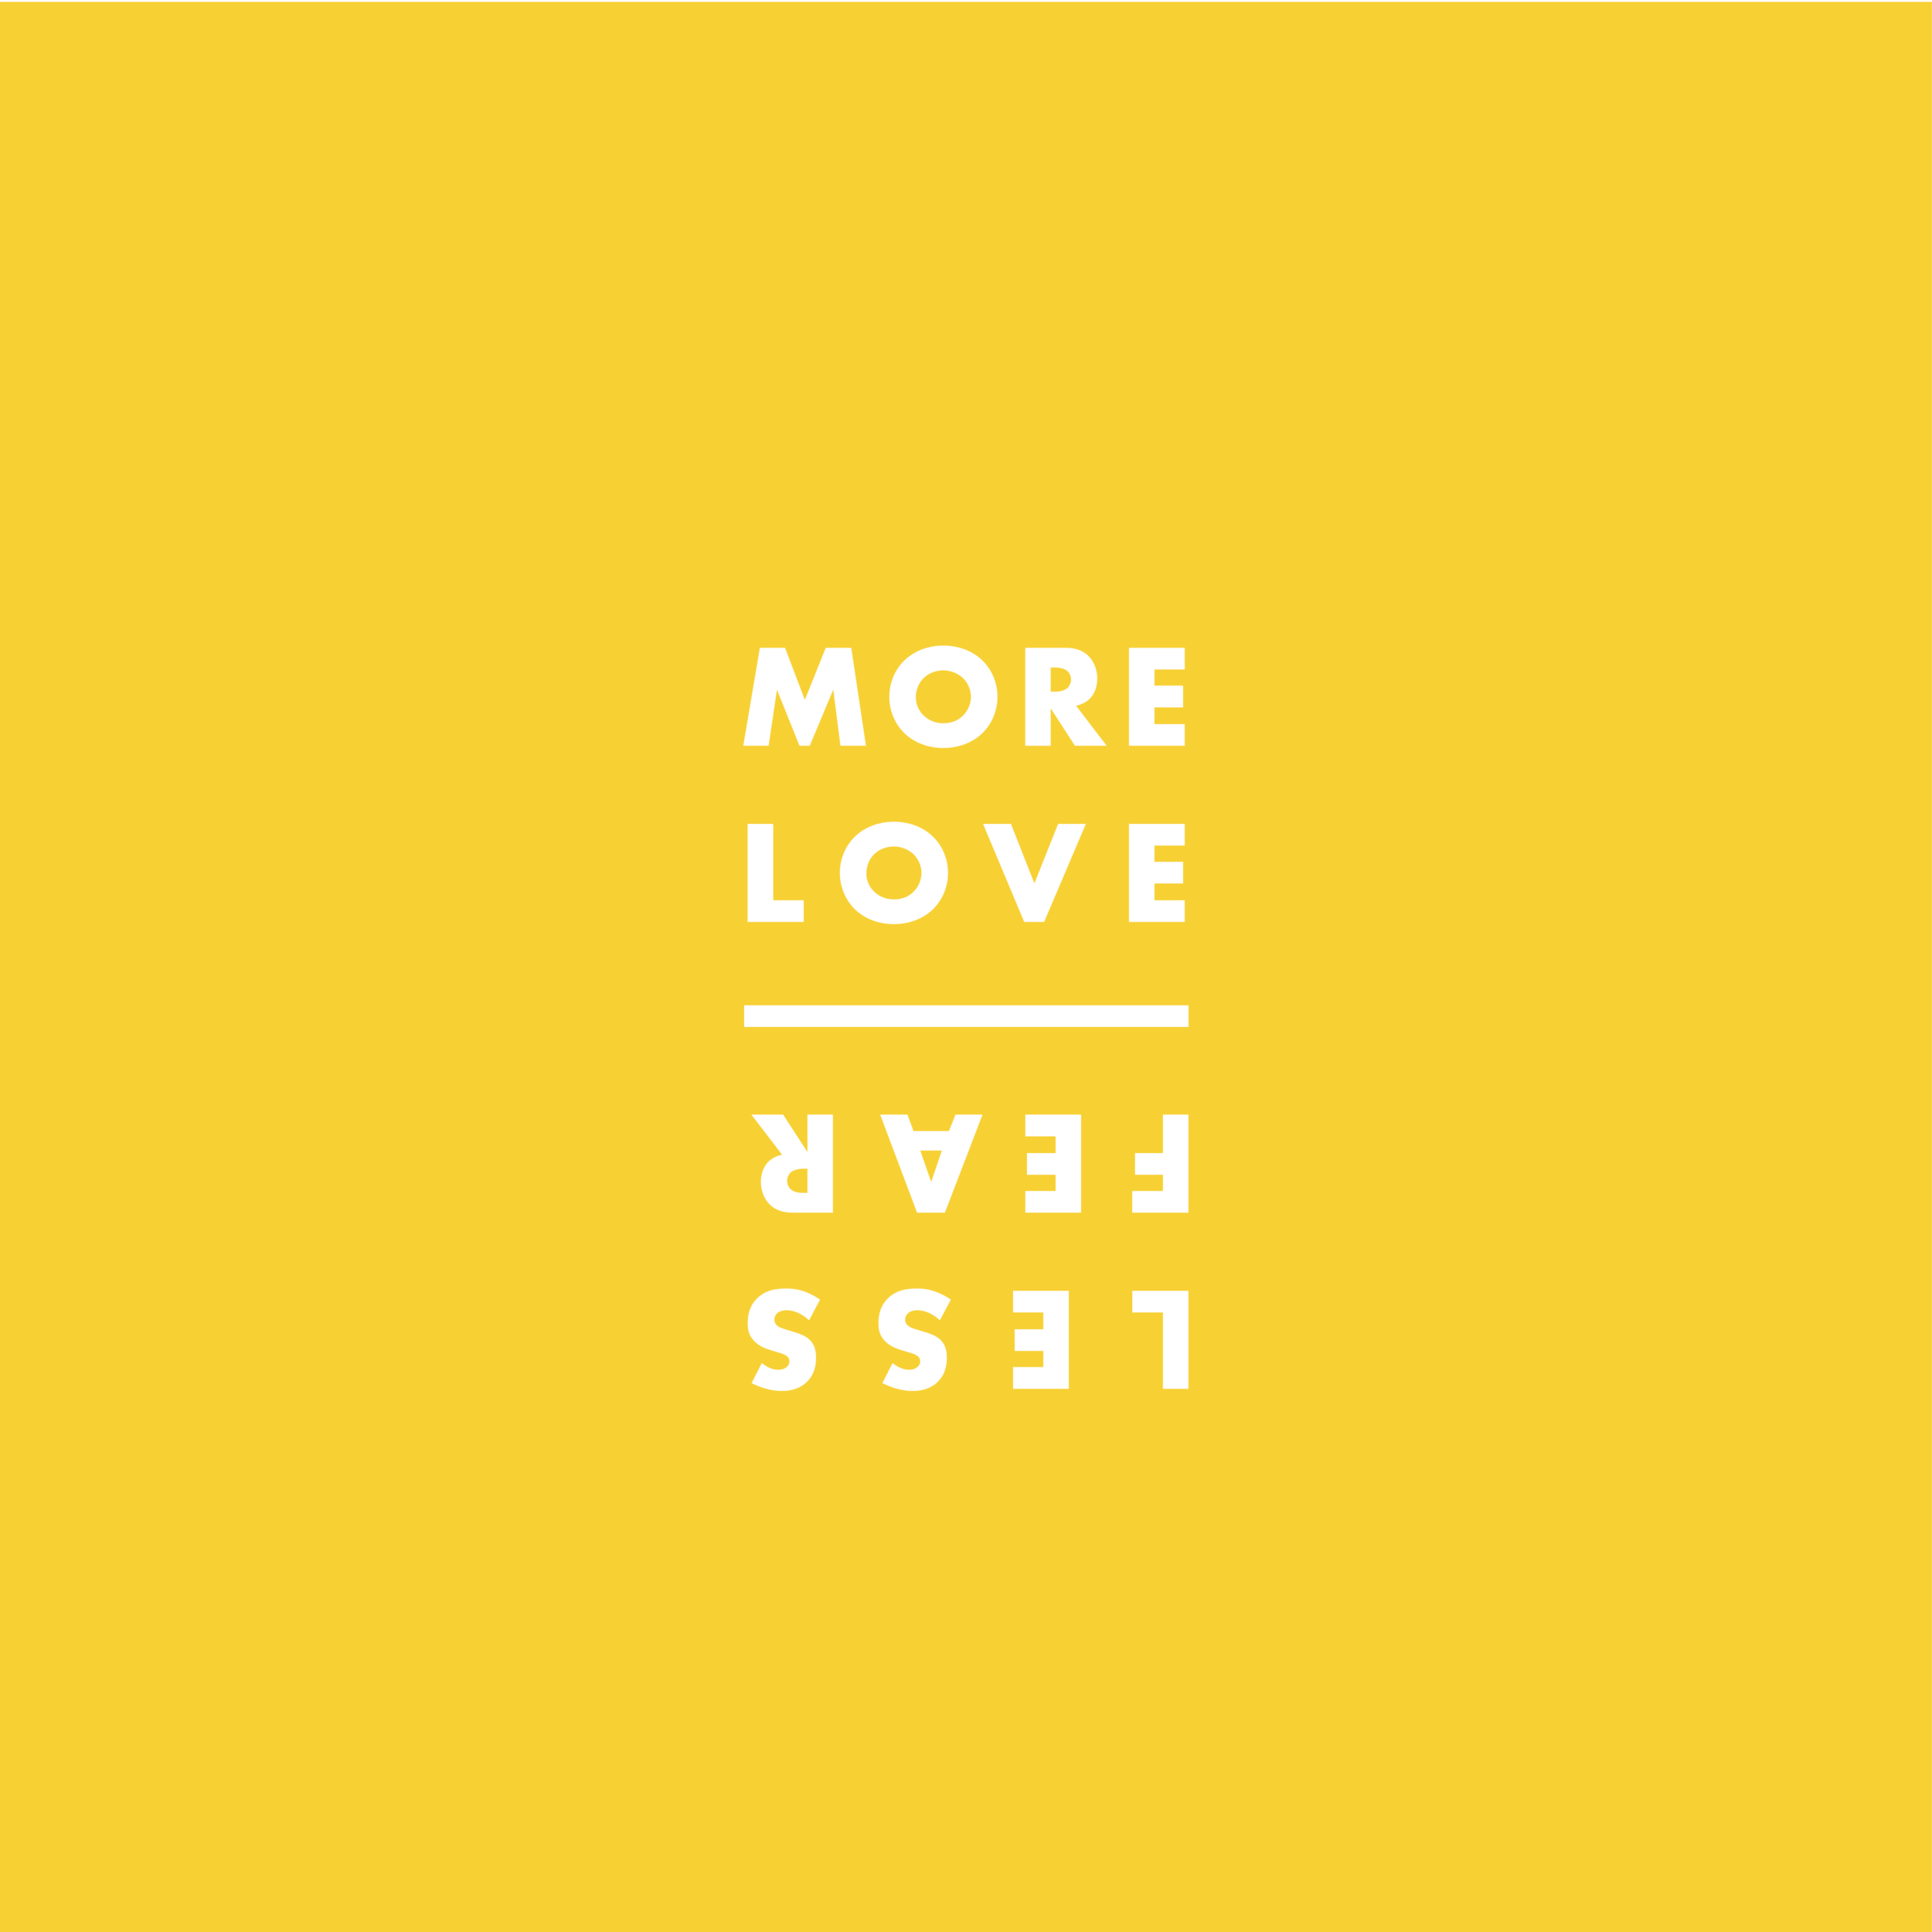 - The More Love Less Fear campaign began in early September. The name of our campaign came from 1 John 4:18, where it says that